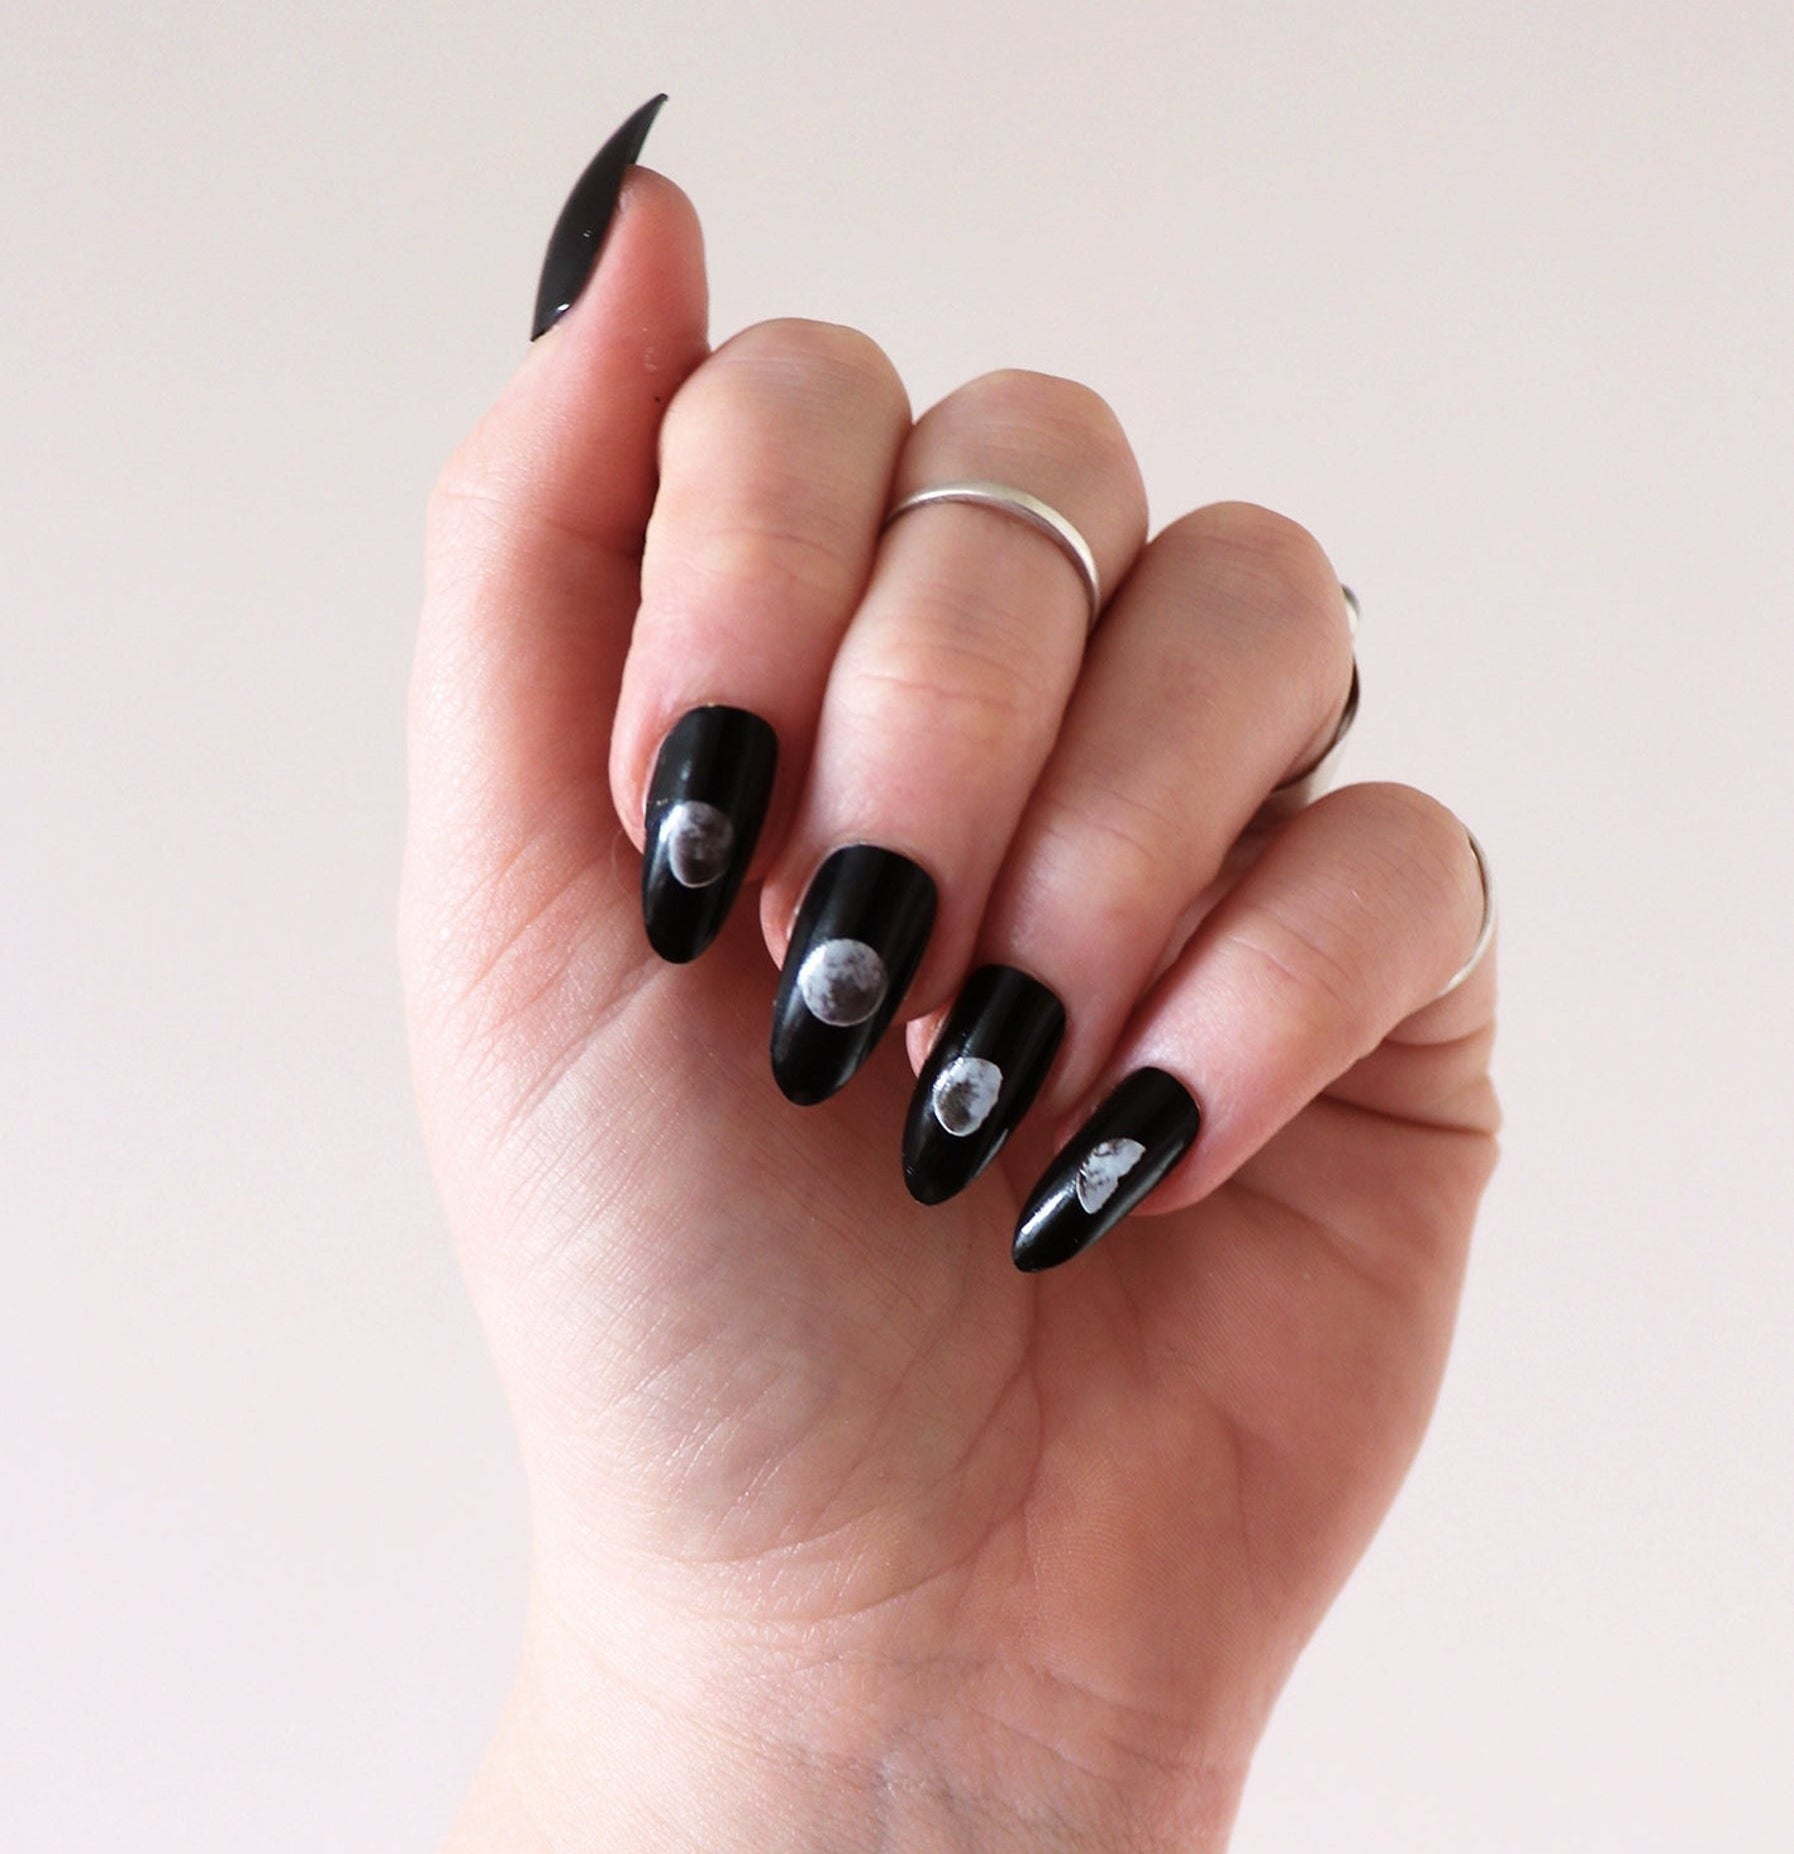 Model wearing the lunar eclipse nail stickers